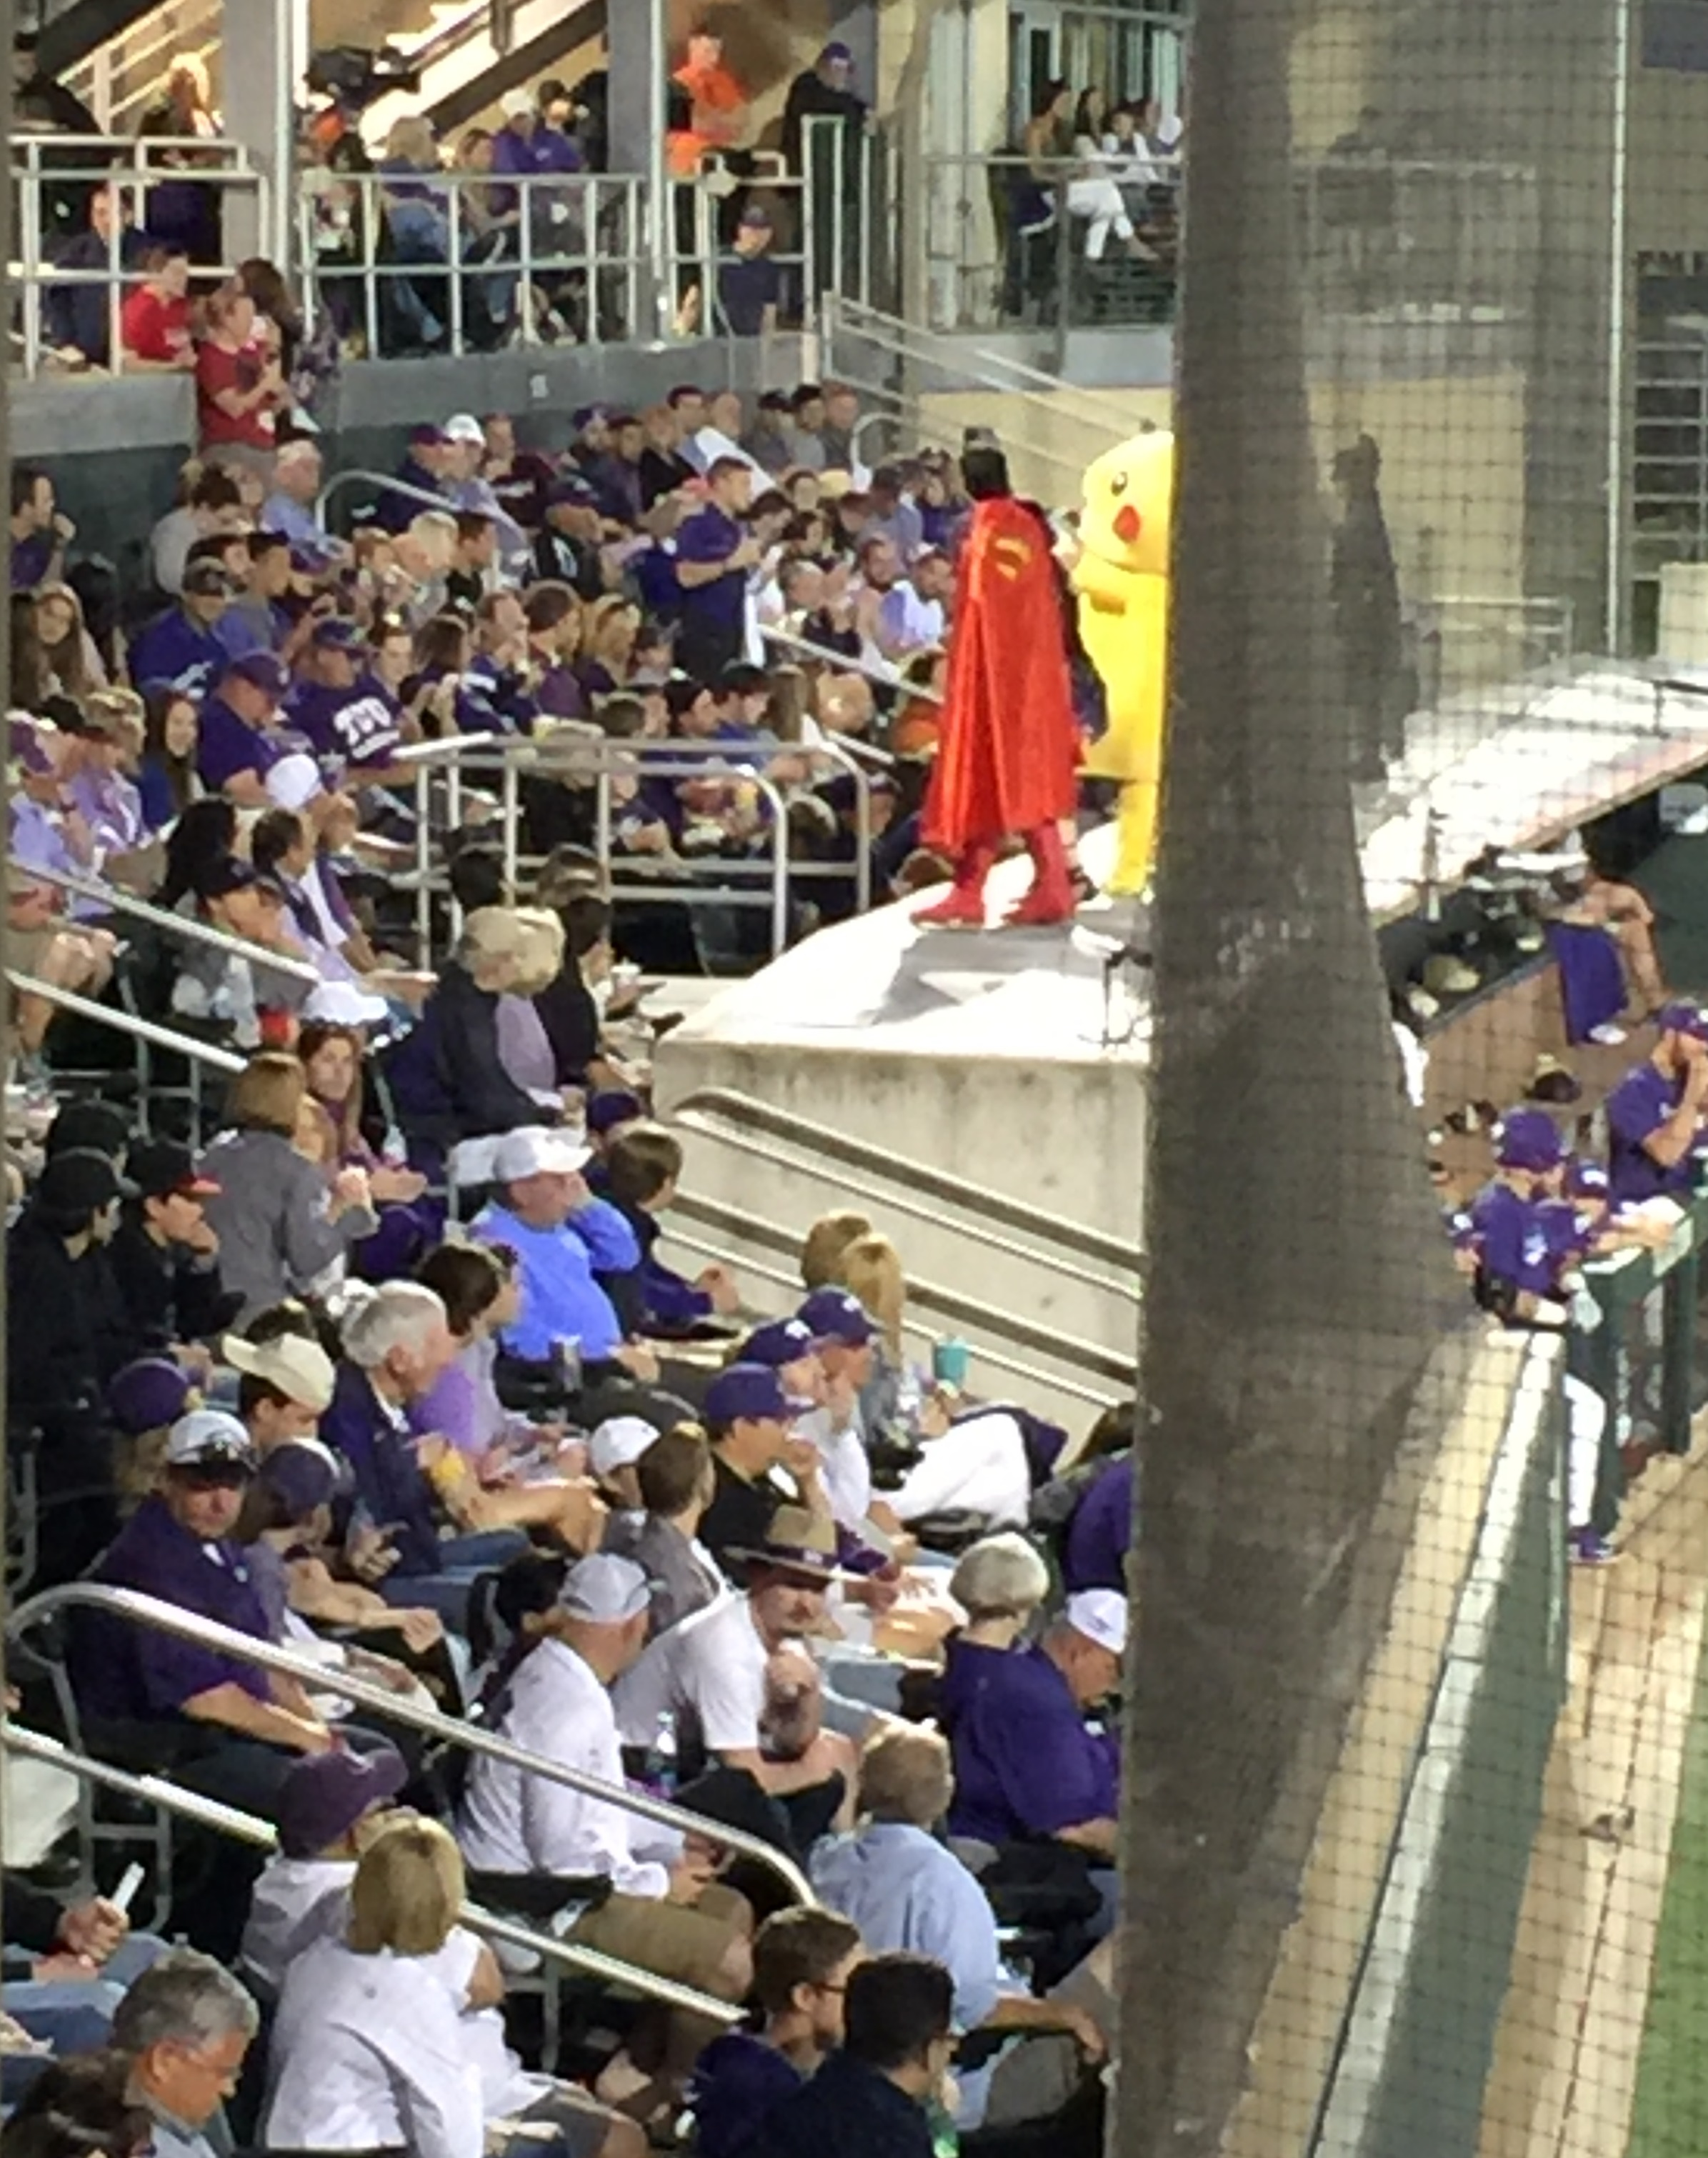 Daniel/Superman helps lead the crowd in cheering for participants in the children's costume contest.